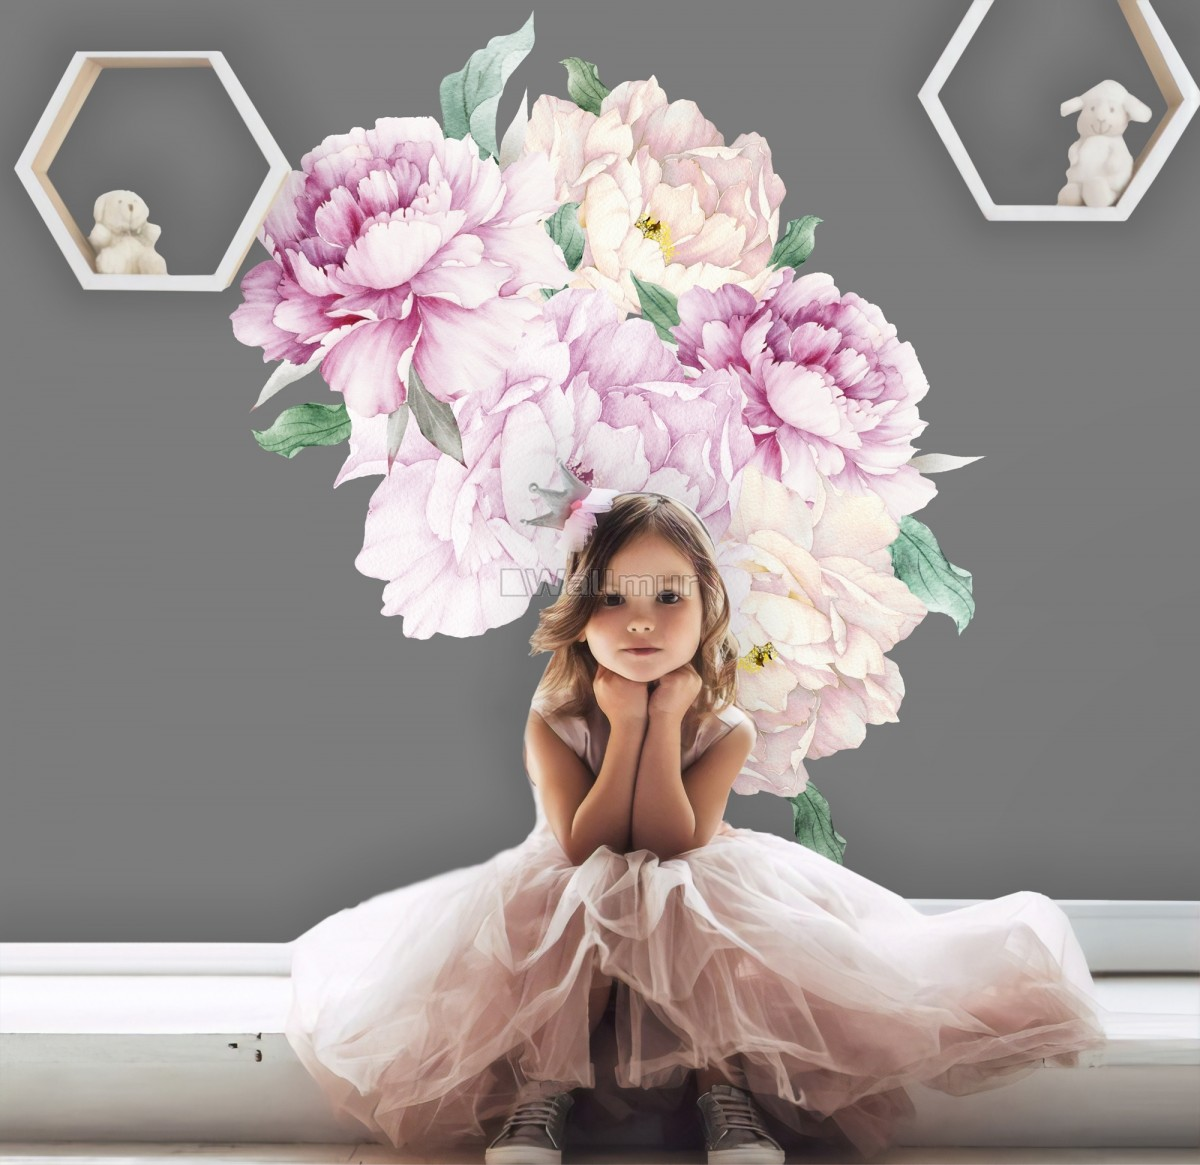 Watercolor Pink White Floral Bouqets with Green Leaf Wall Decal Sticker